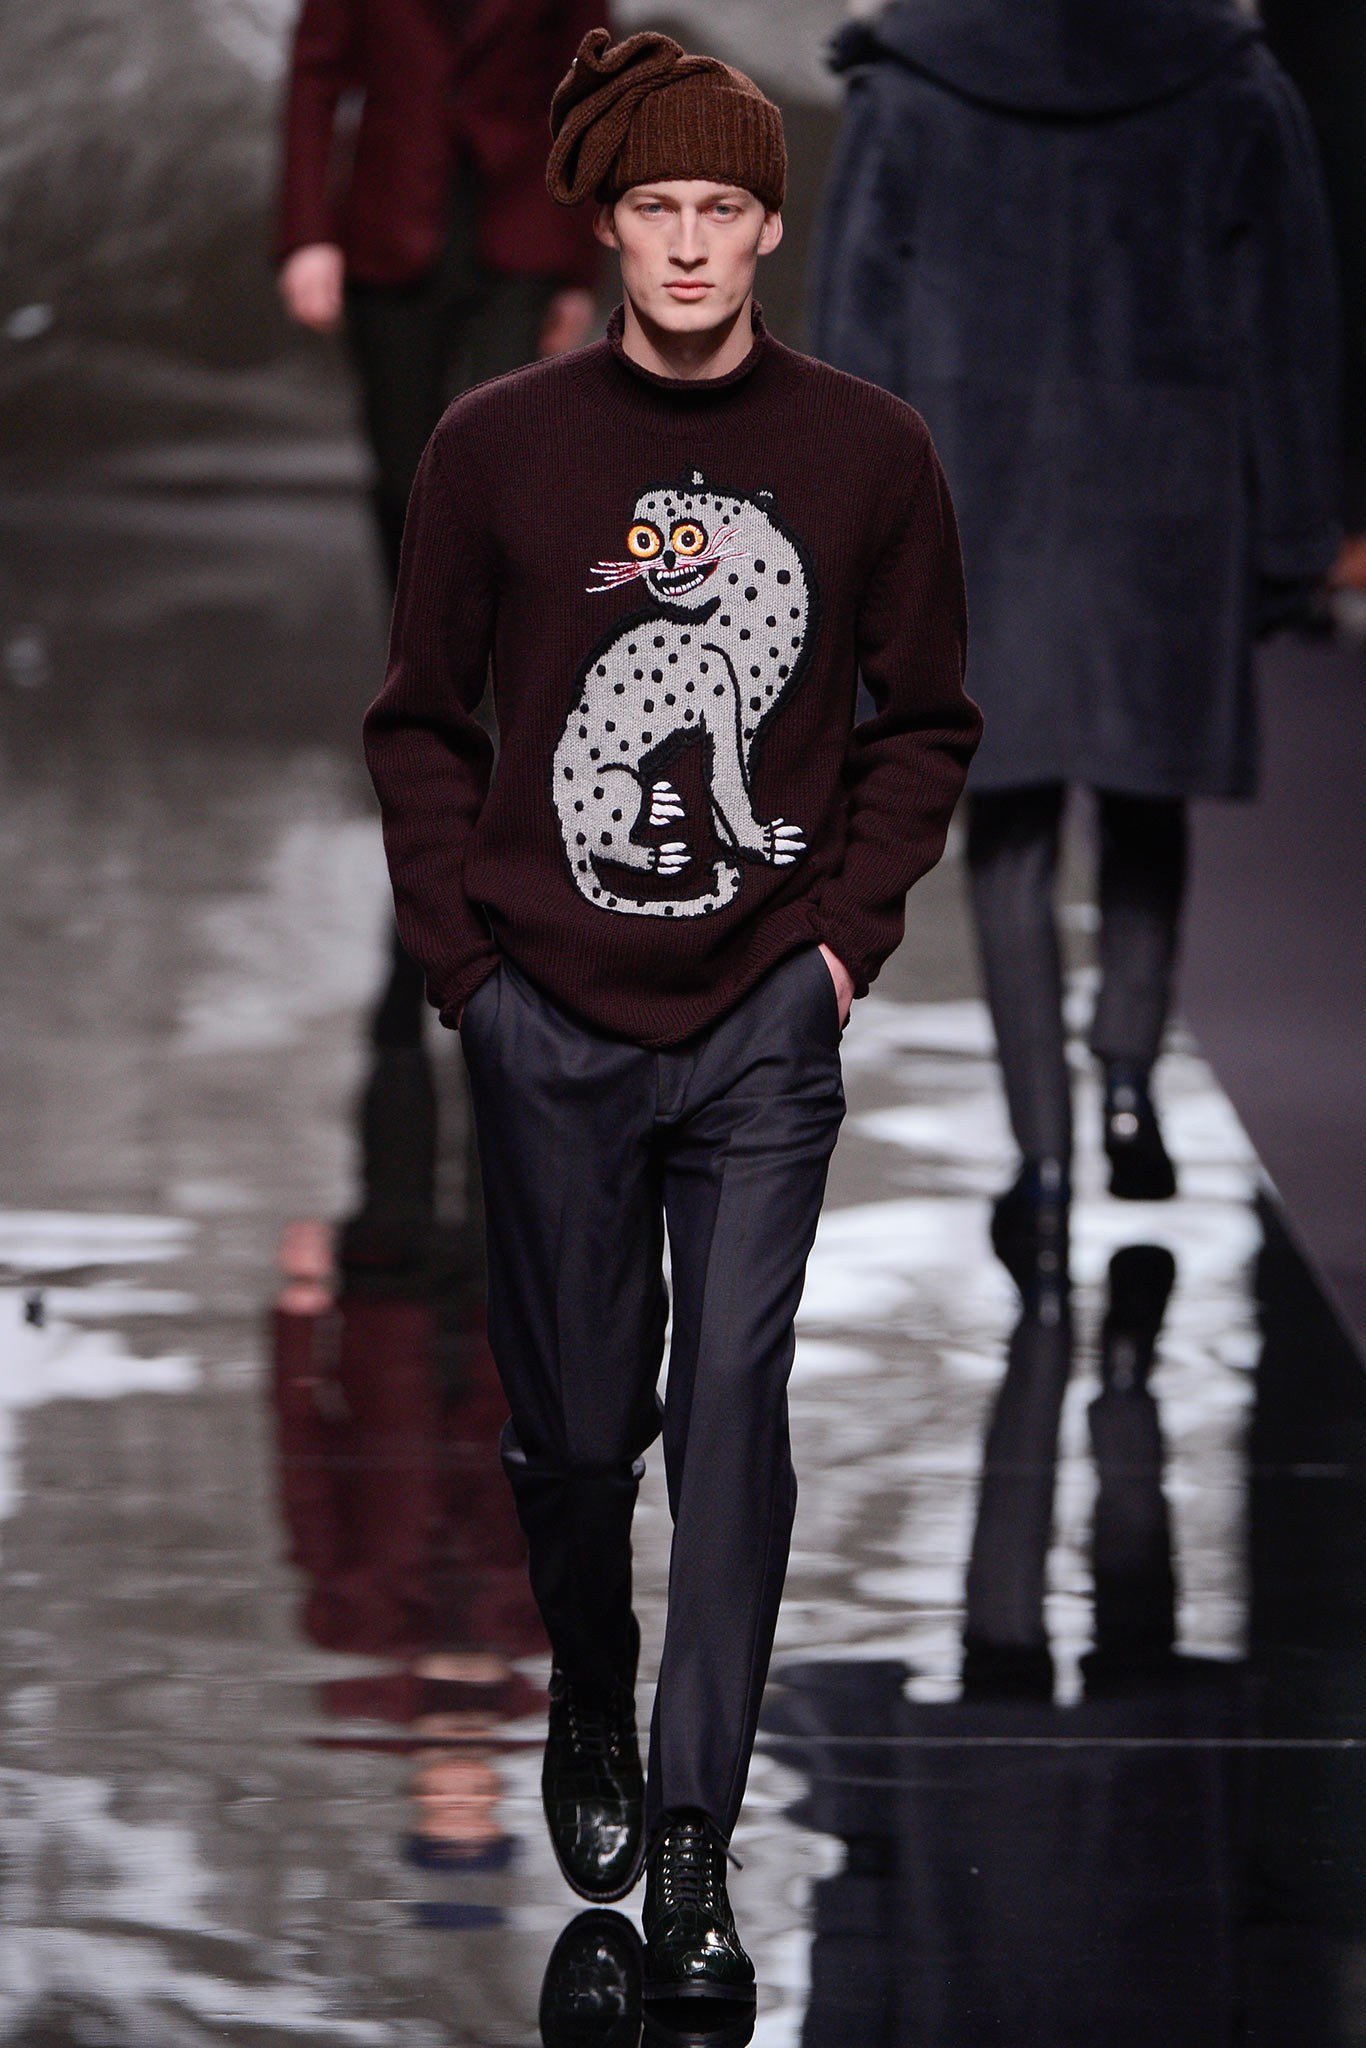 AW14 (featuring Chapman Brothers design)